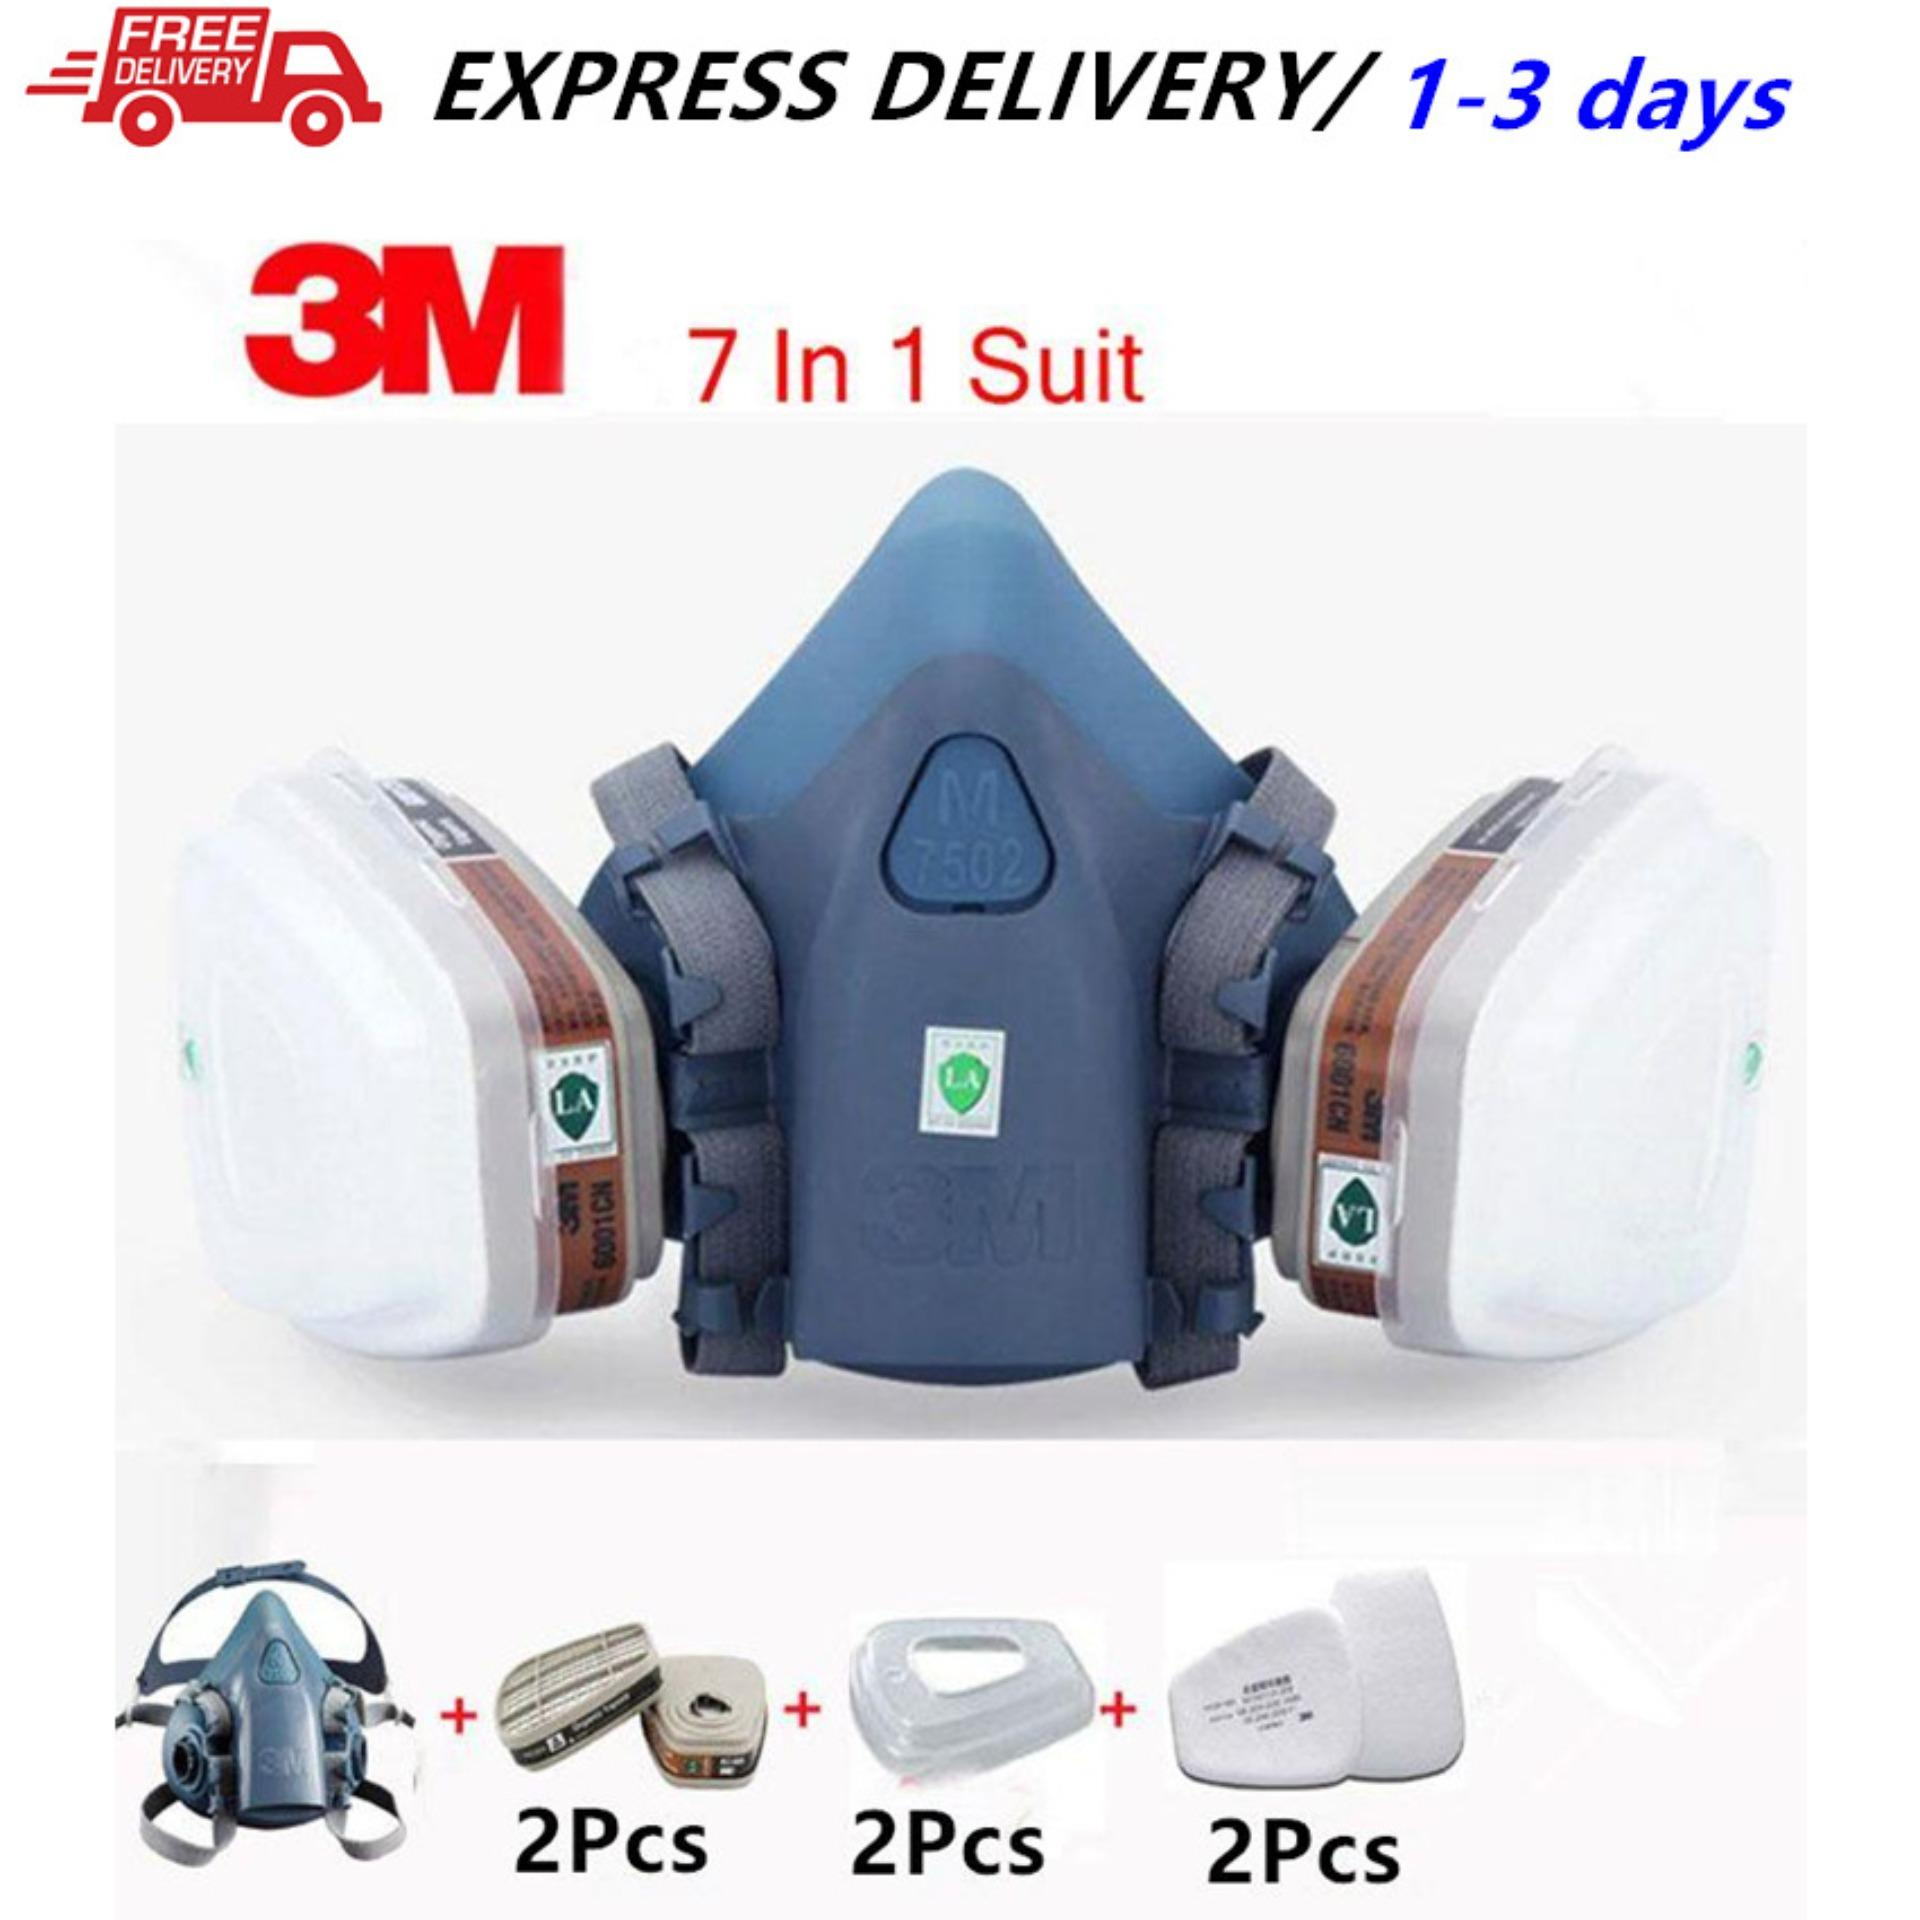 3M Philippines - 3M Medical Masks for sale - prices & reviews | Lazada